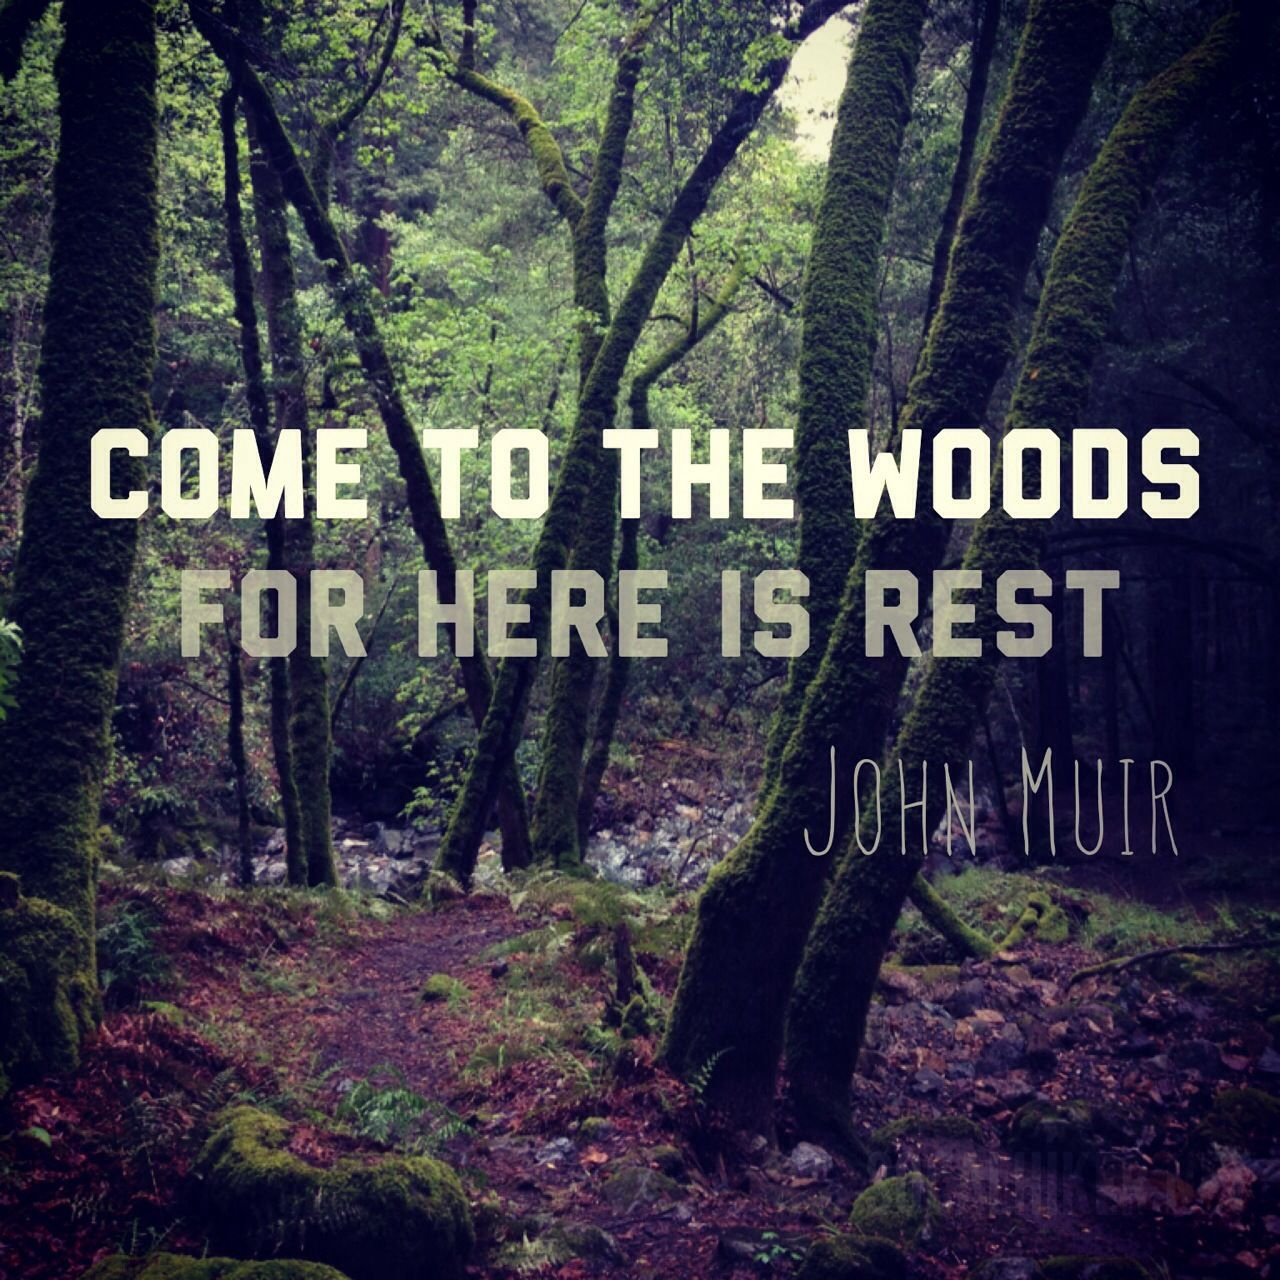 Muir Monday: Come to the Woods, for Here is Rest - SoCal Hiker